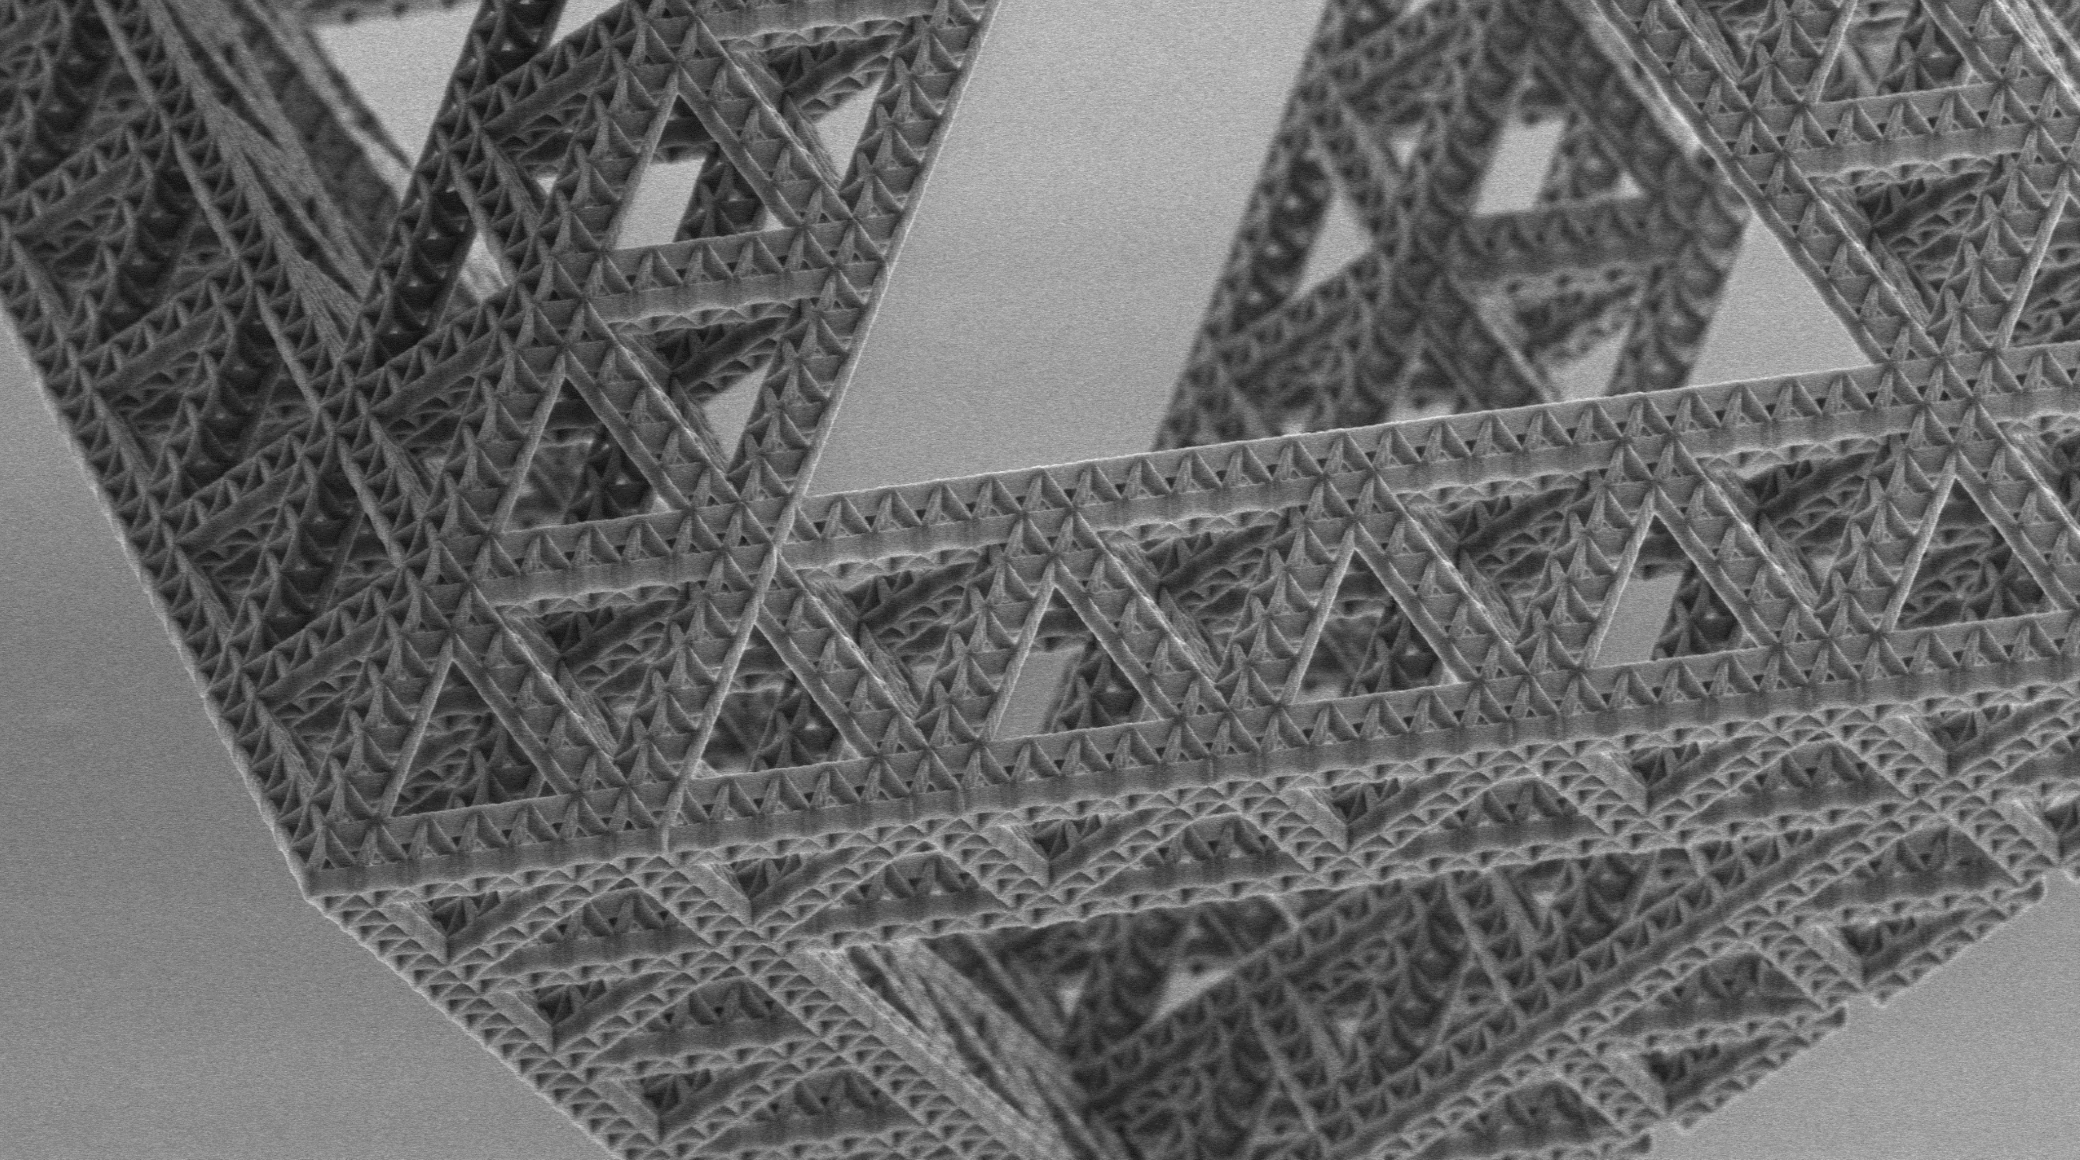 Nanoarchitected Materials - Redefining Materials Design from the Nanoscale Up